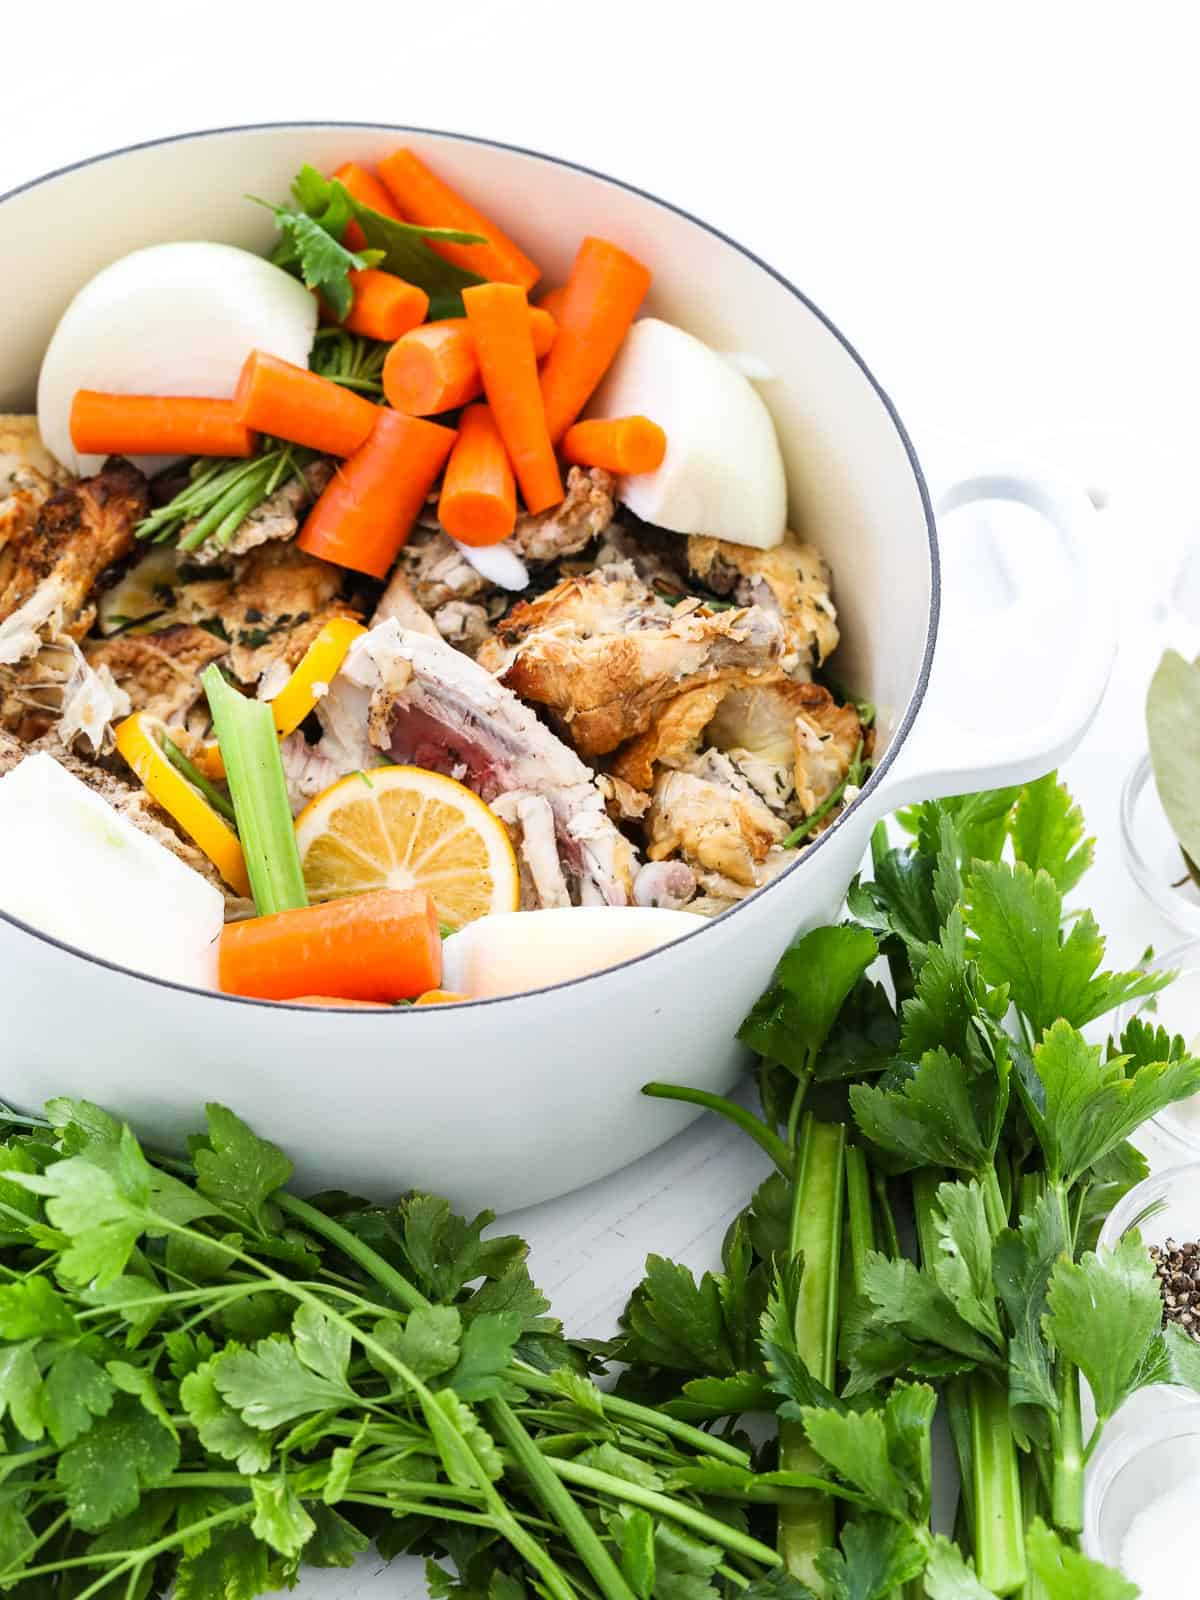 A large white cooking pot filled with ingredients to make chicken stock at home.